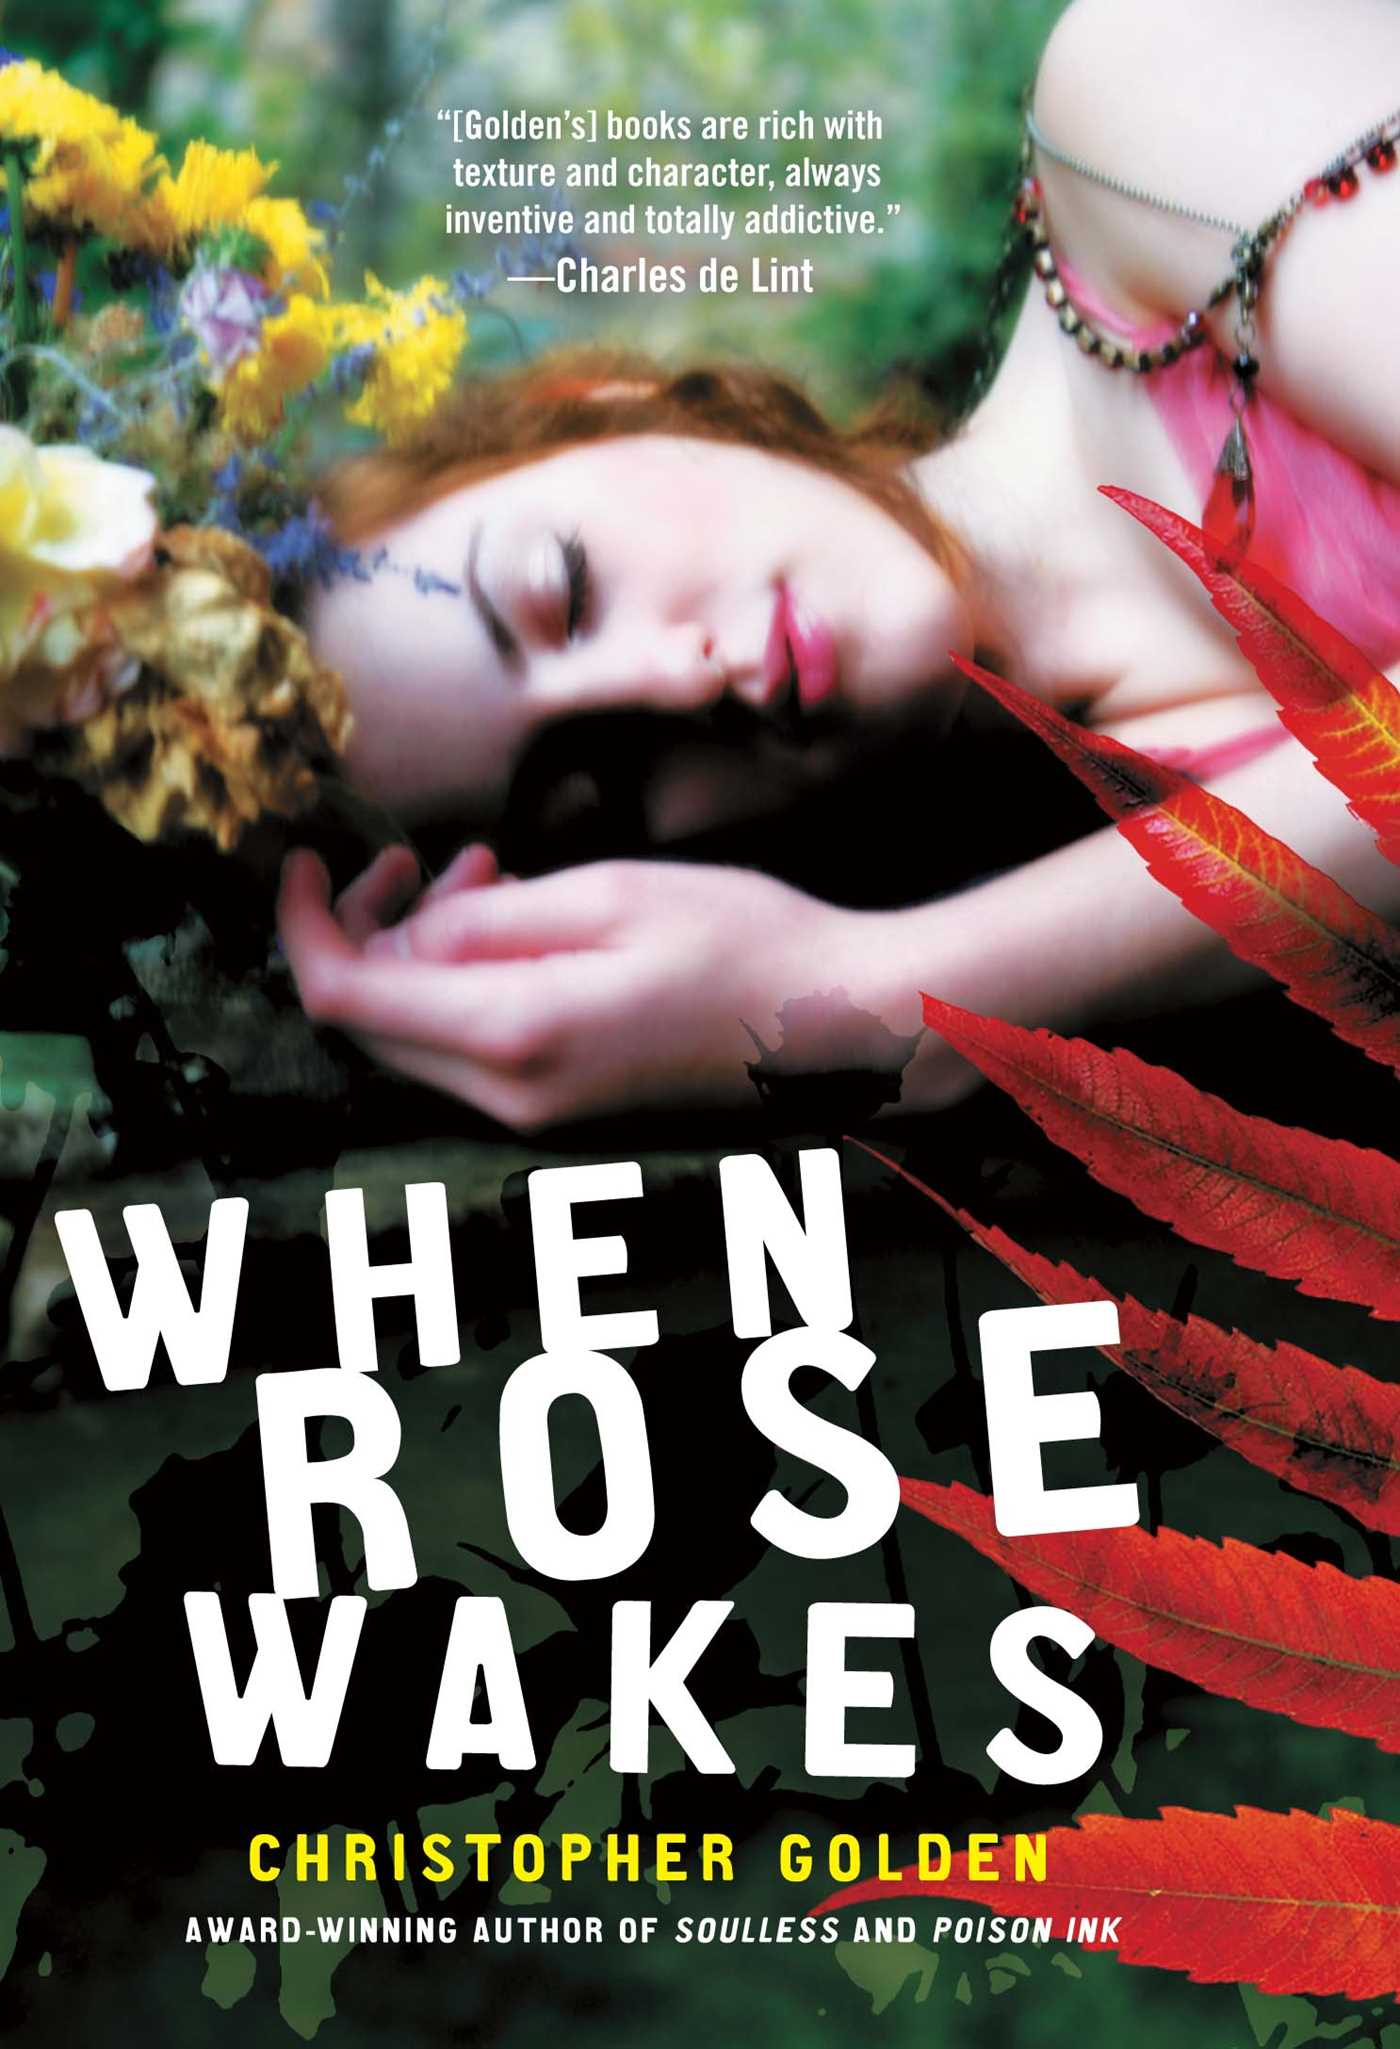 When-rose-wakes-9781439155387_hr